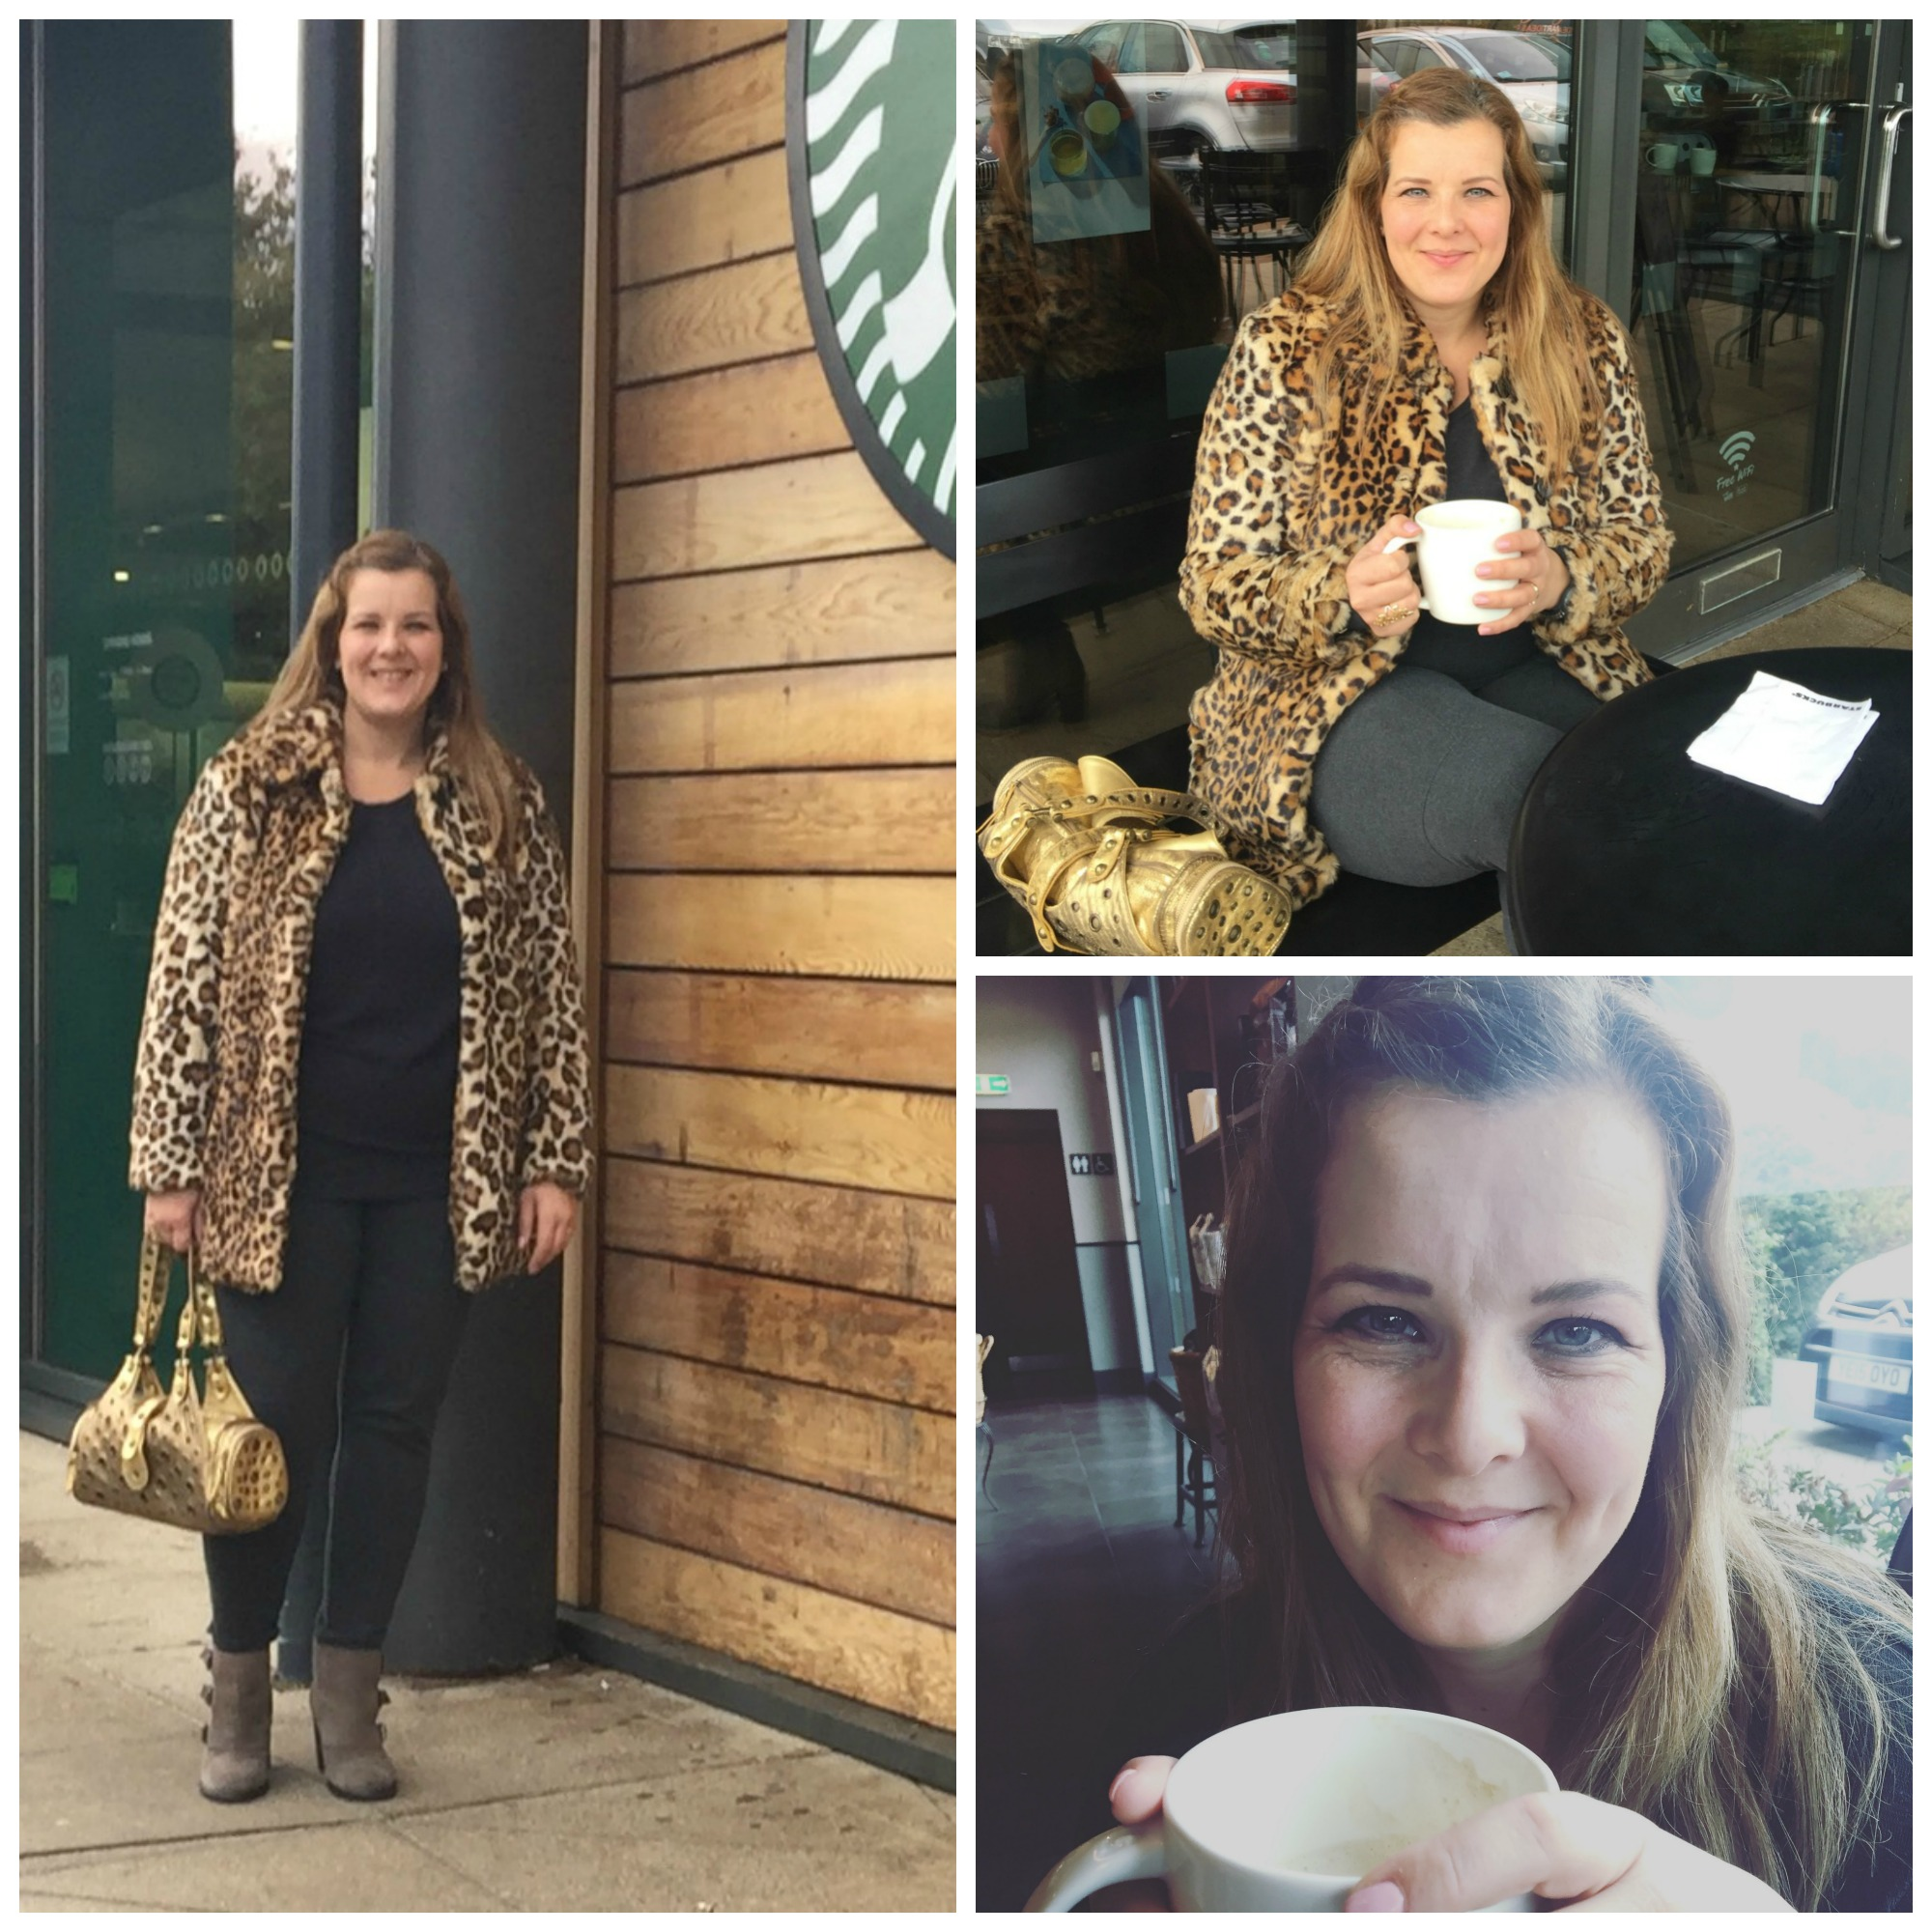 Leopard print coat out for coffee